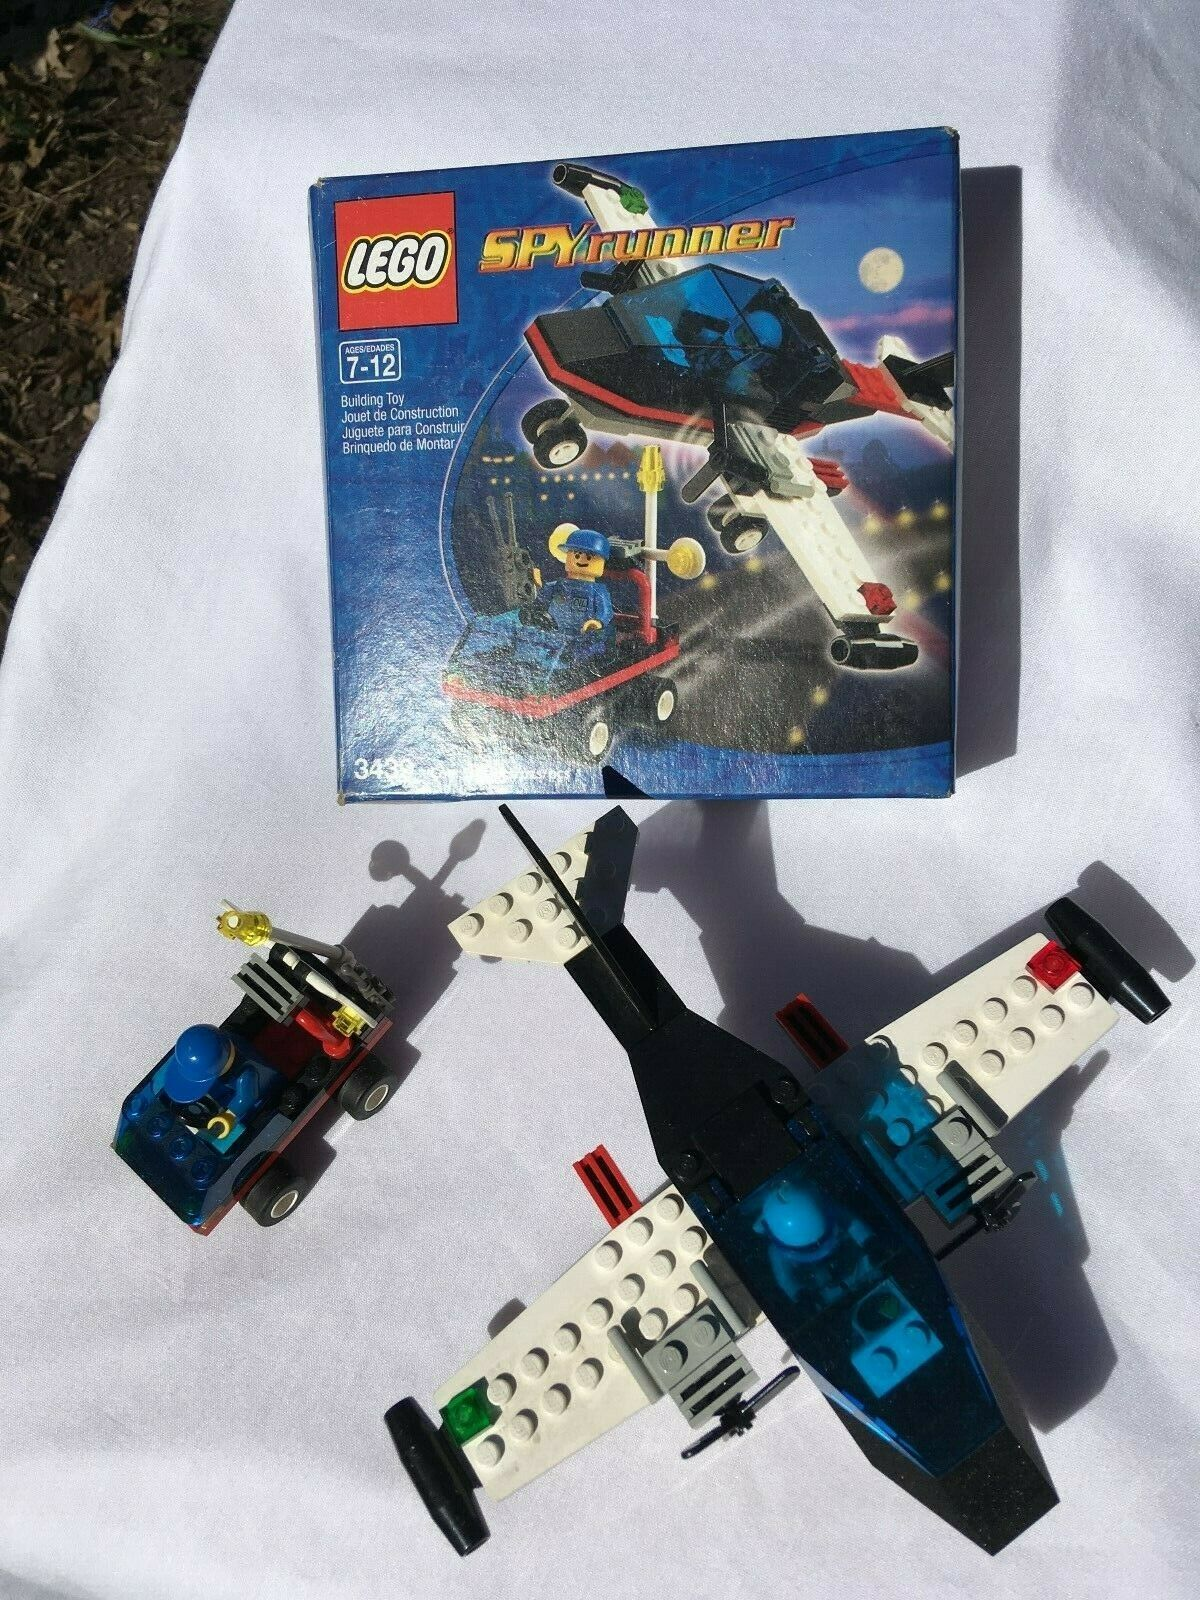 completare  Lego 3439 Spy correrener airplane jet aircraft with instructions e scatola  la migliore offerta del negozio online